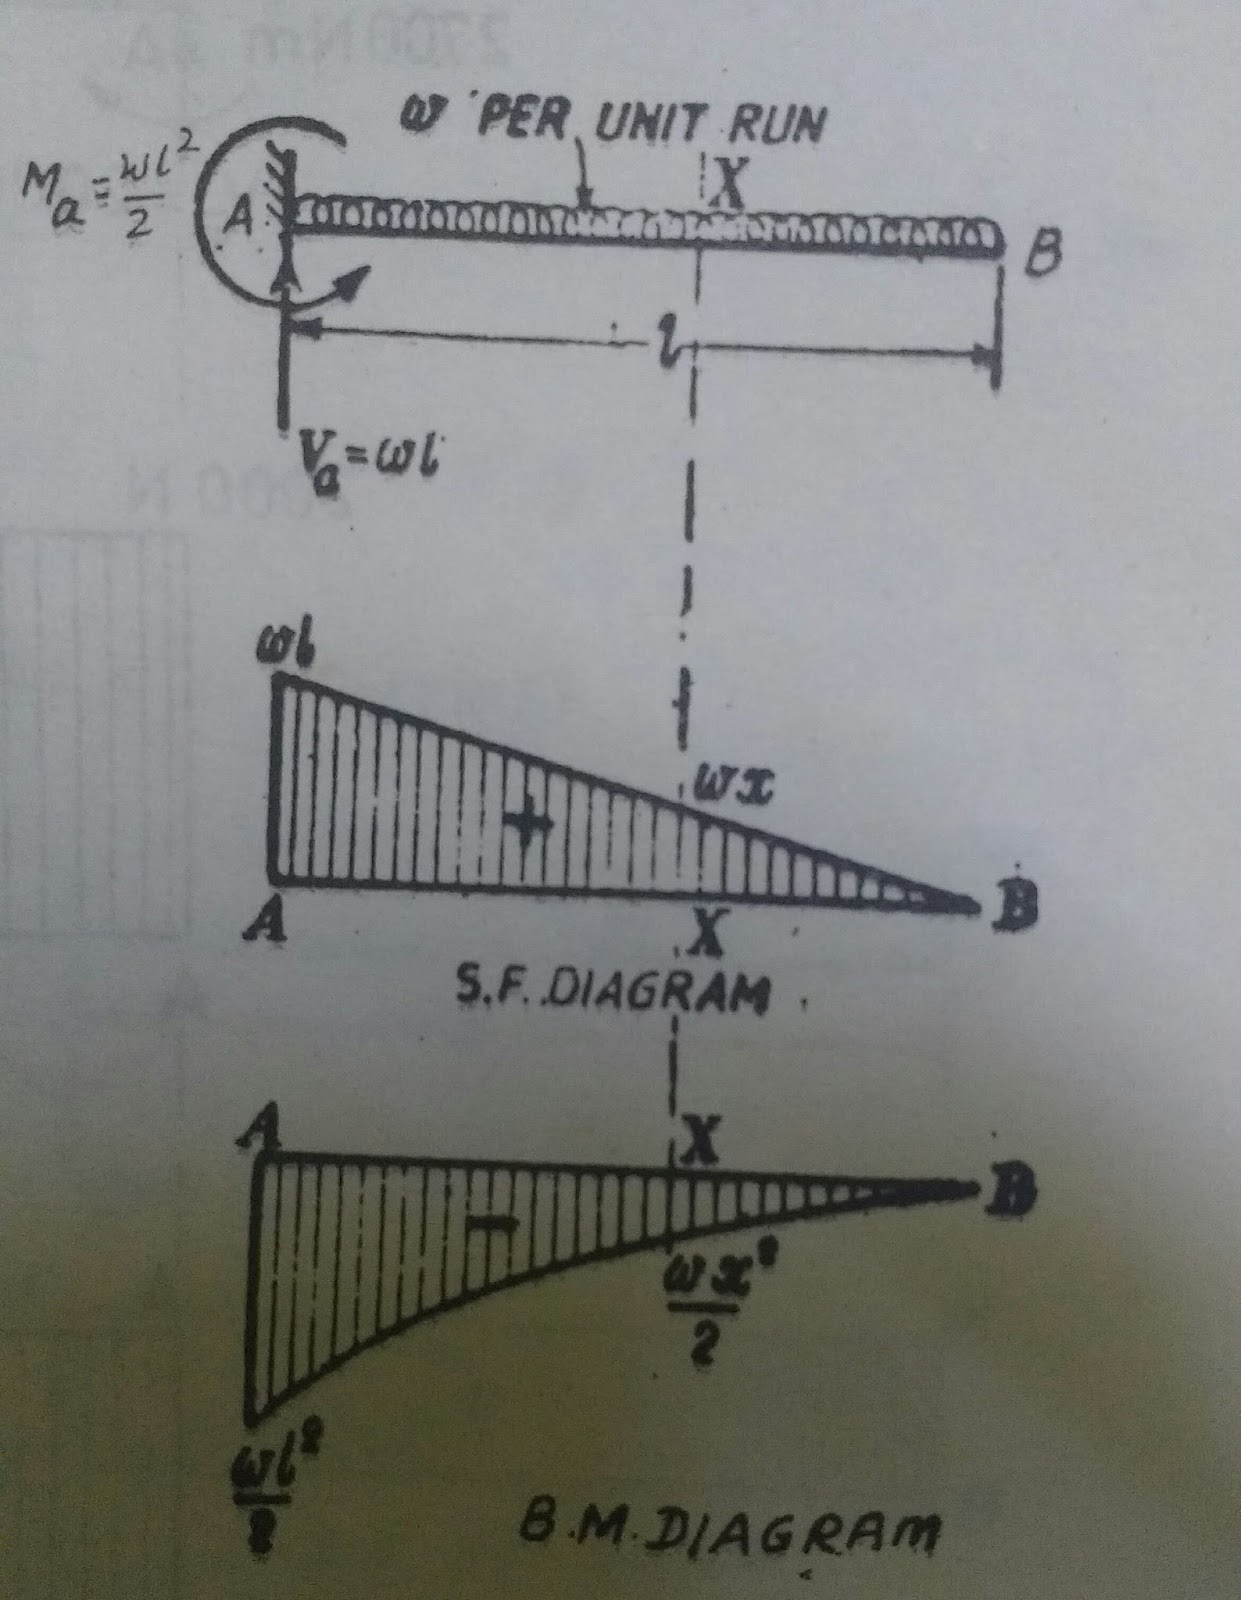 Basic Civil Engineering What Is Shear Force And Bending Moment Diagrams For Different Beams Cantilever Beam Of Length L Having Uniformaly Distributed Load W